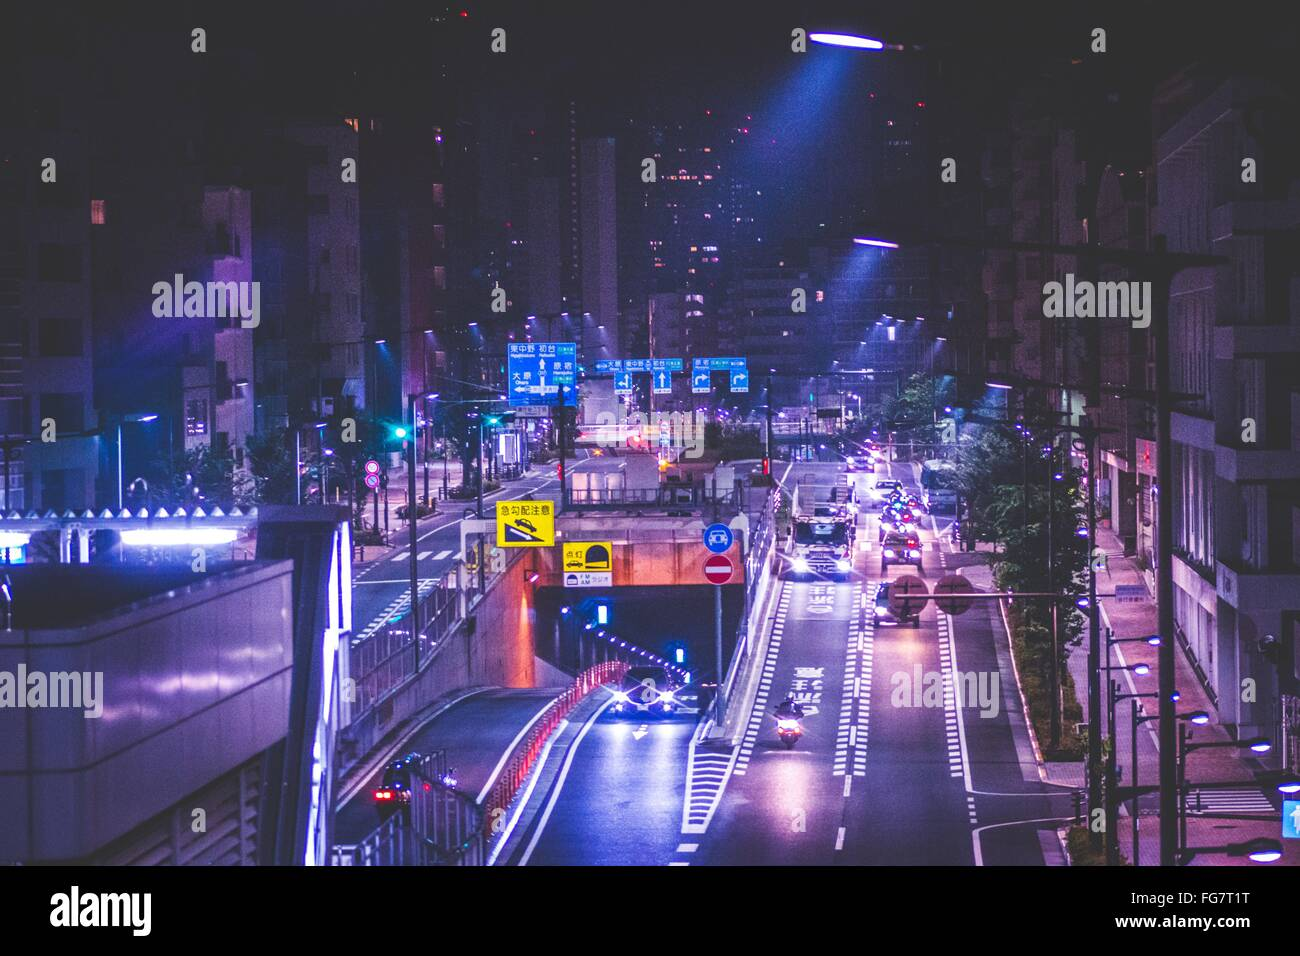 Busy Street At Night - Stock Image